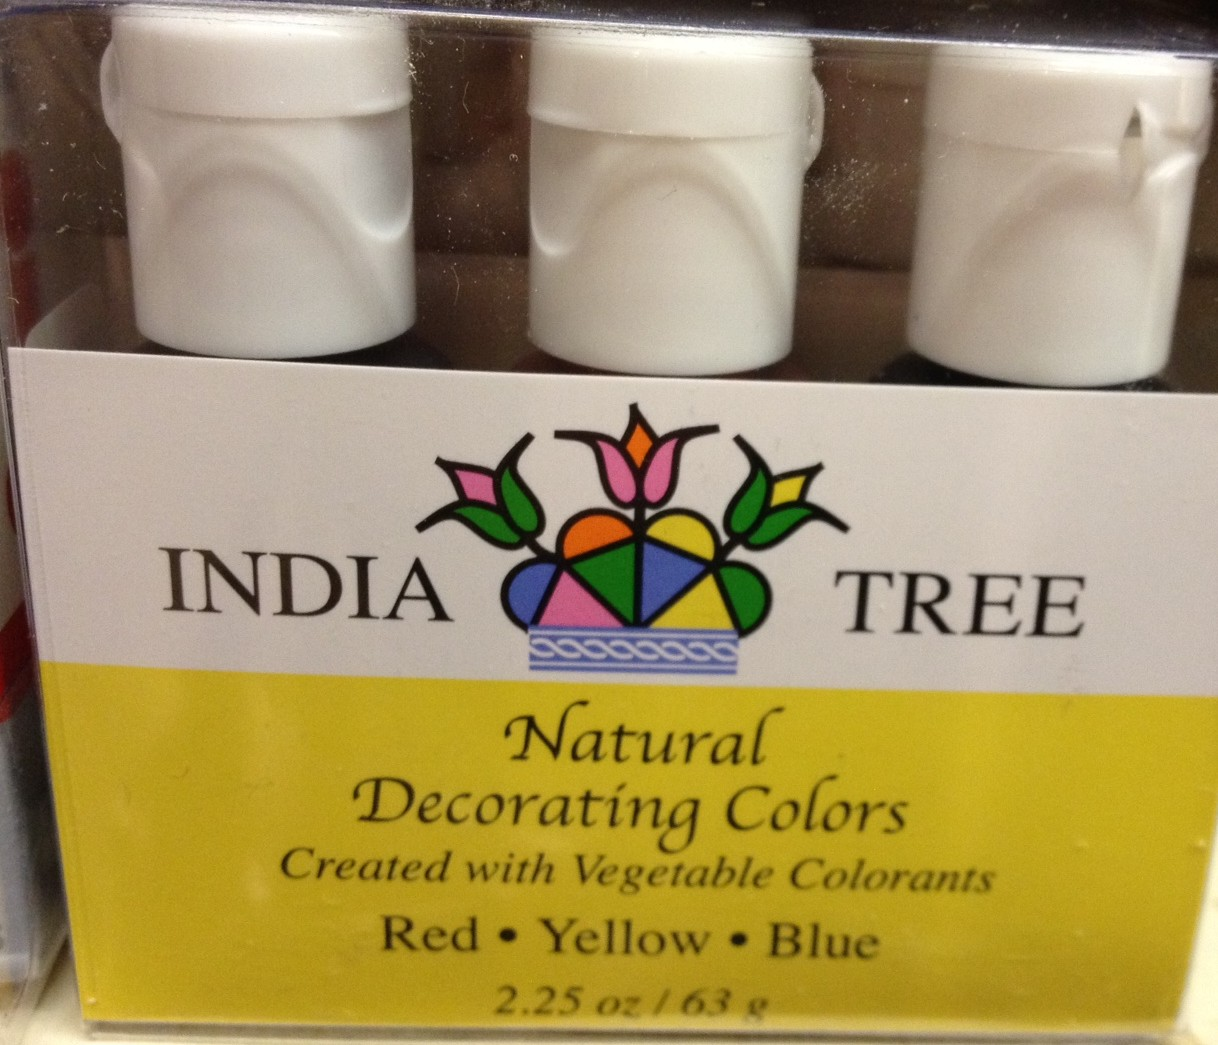 Accidentally Vegan: Natural Decorating Colors from India Tree!